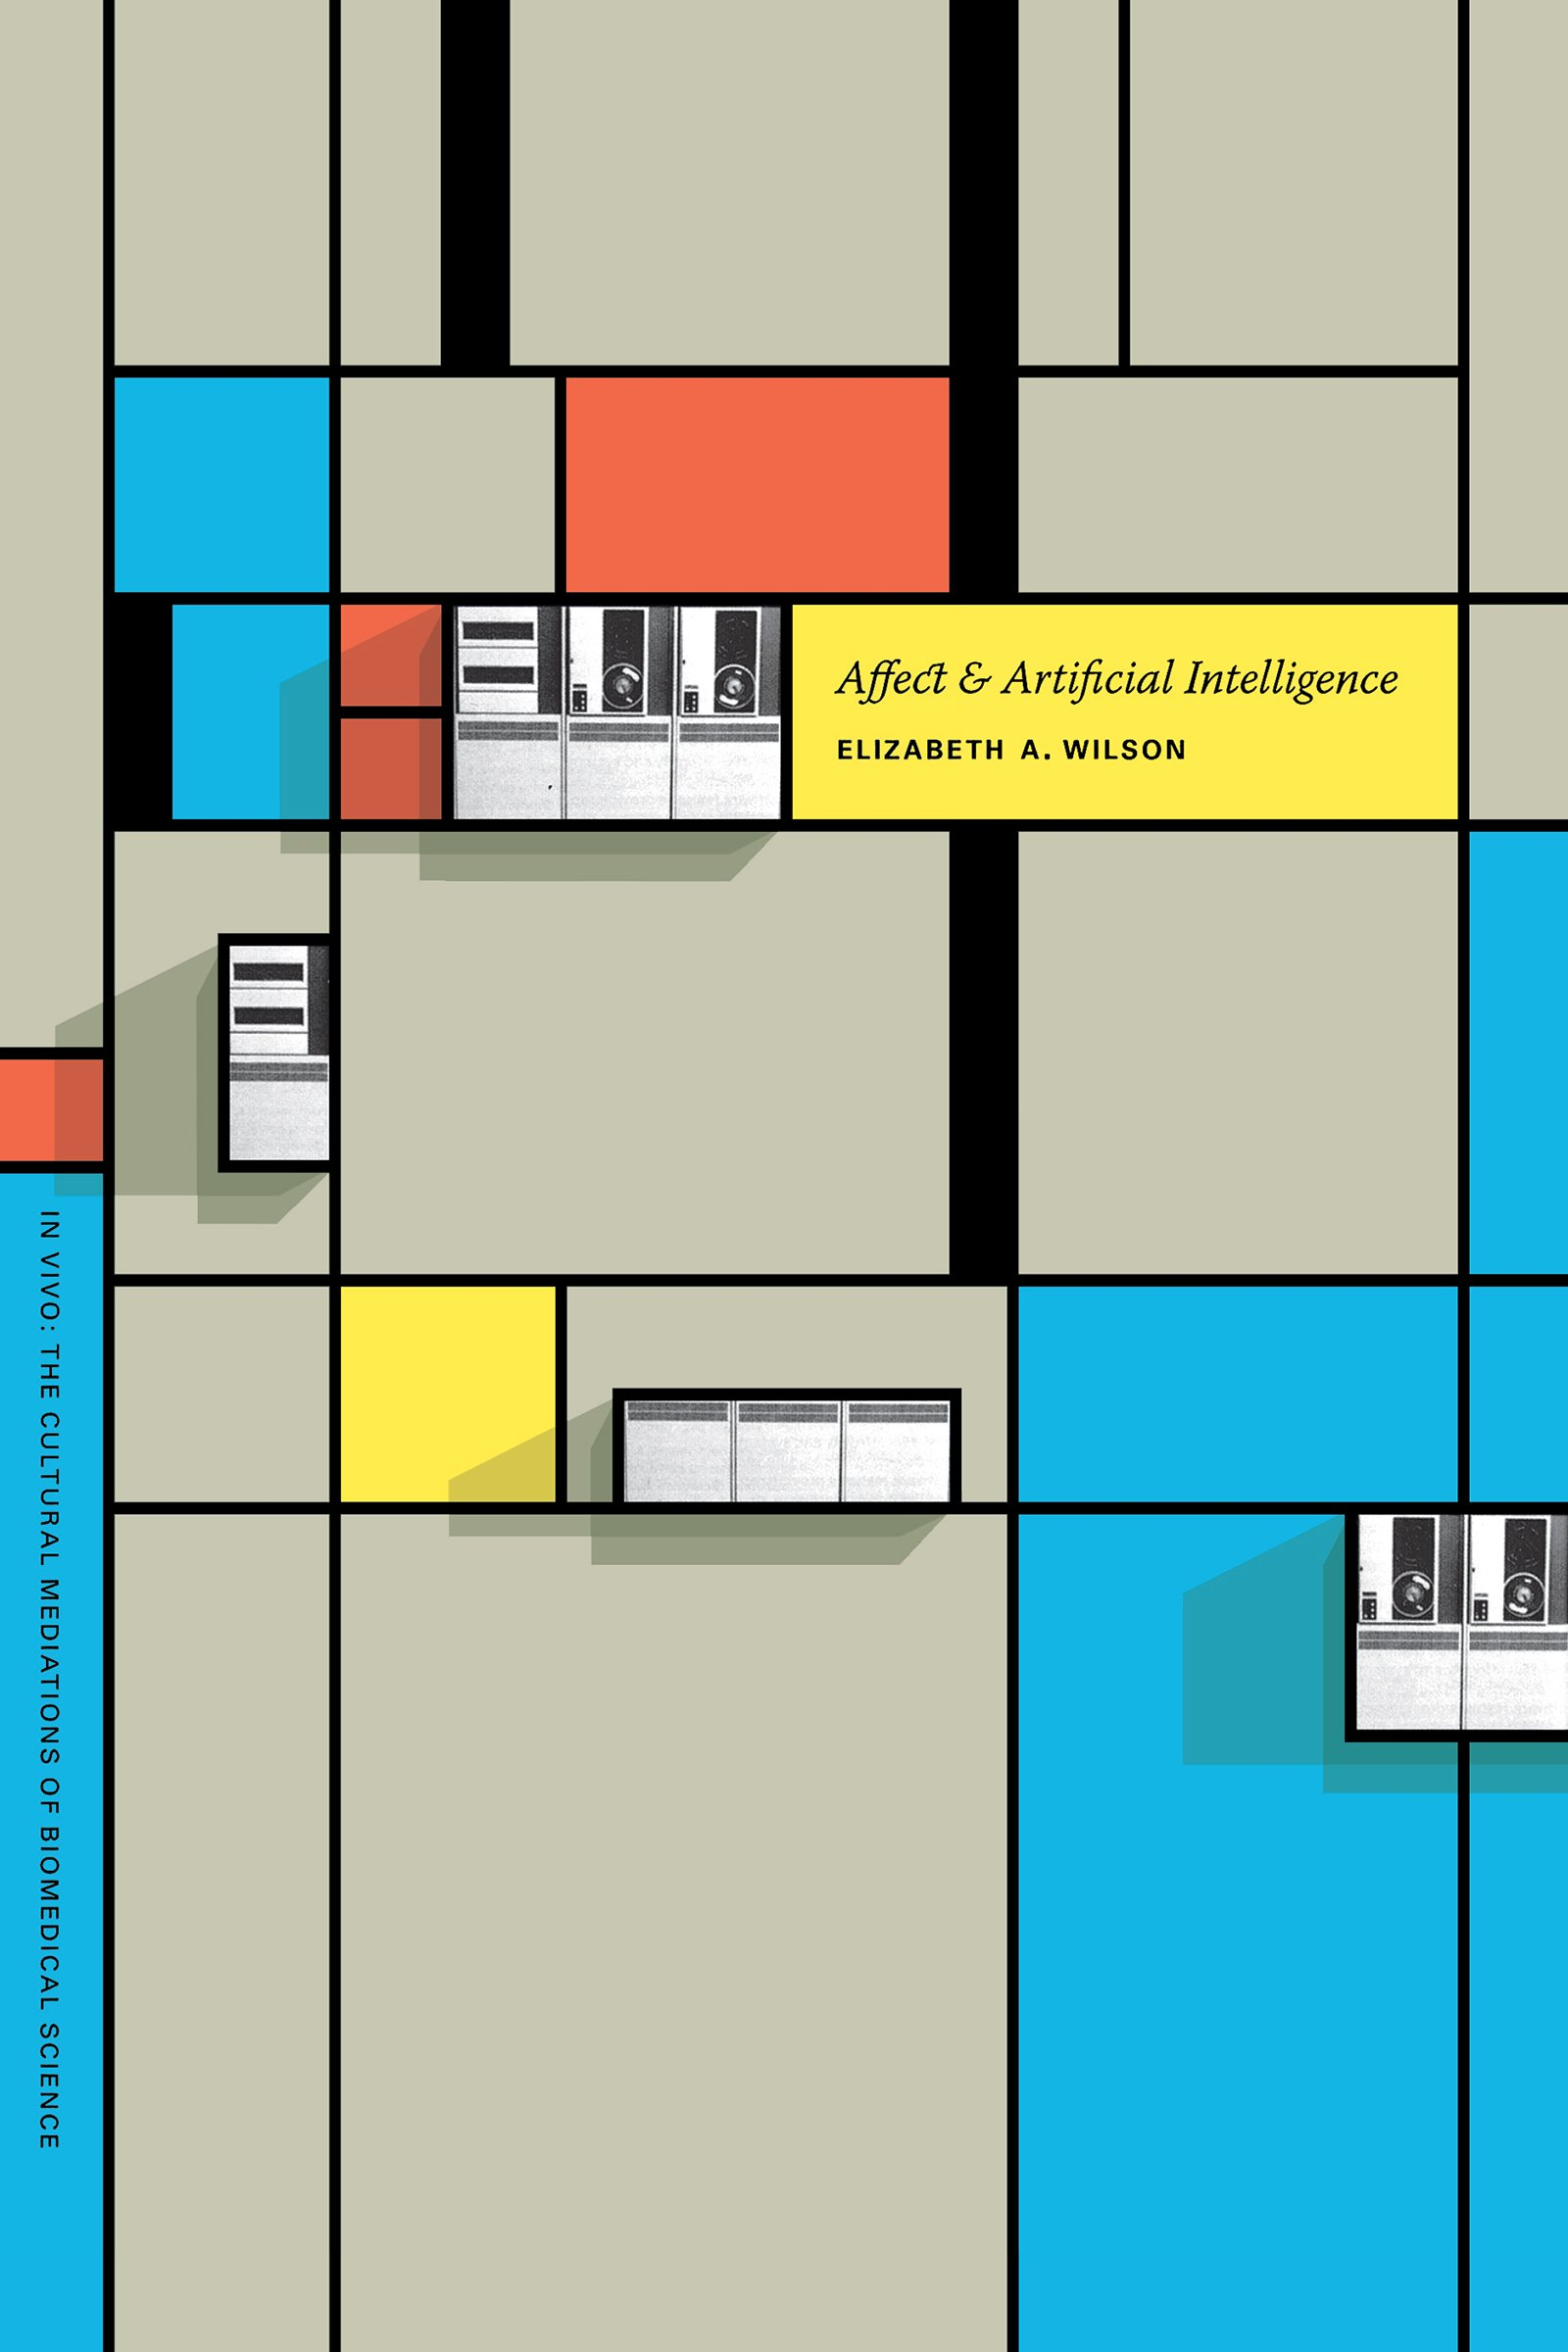 Affect and Artificial Intelligence (In Vivo)